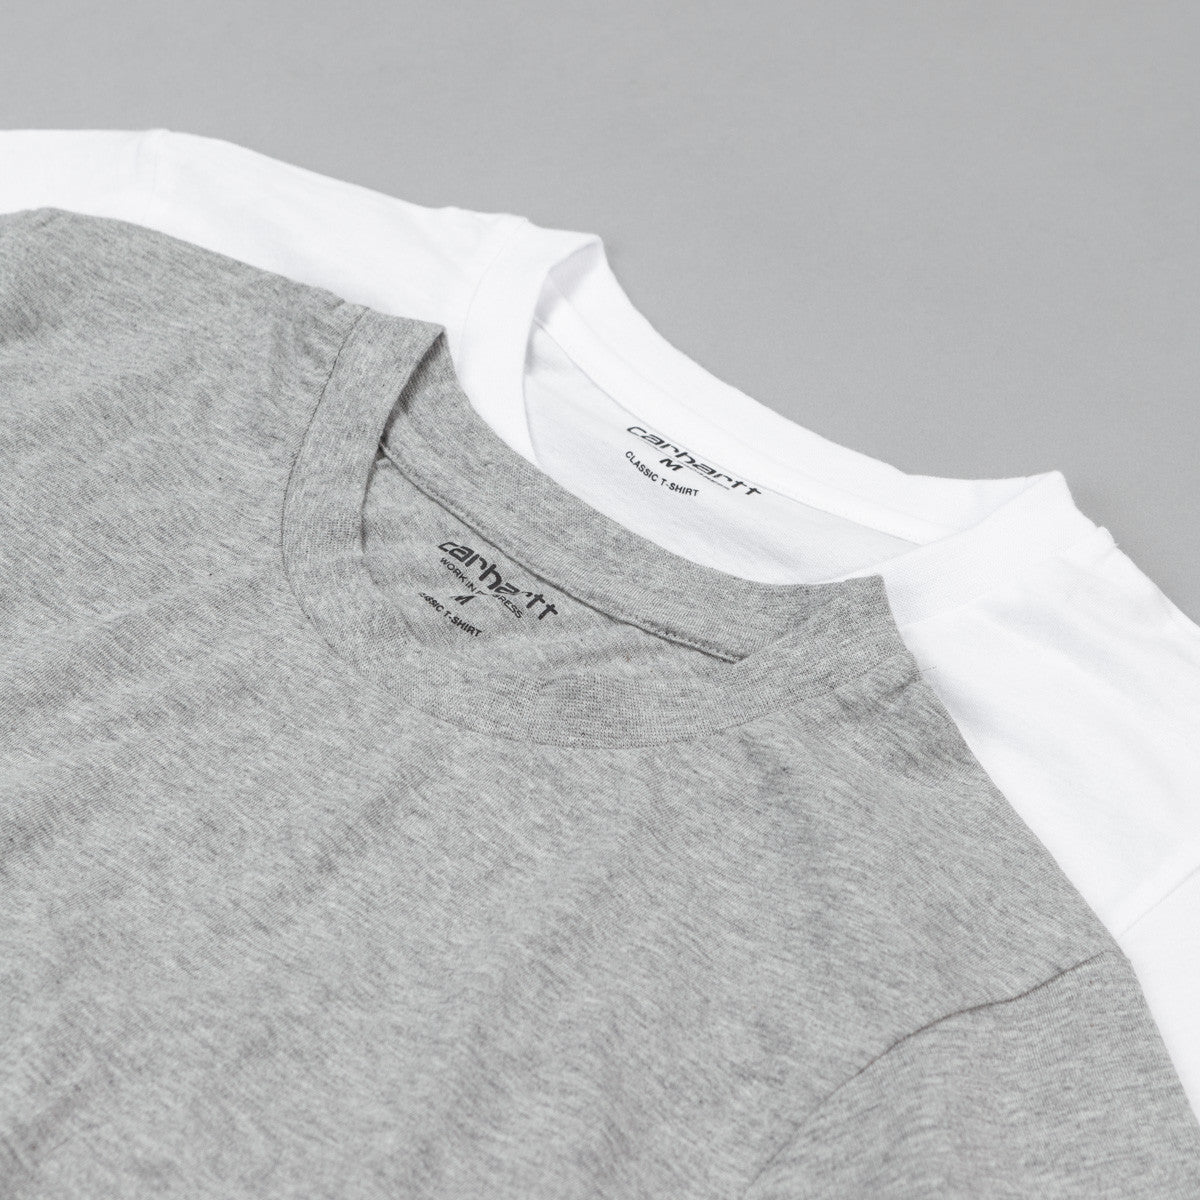 Carhartt Standard T-Shirt 2 Pack- White / Grey Heather